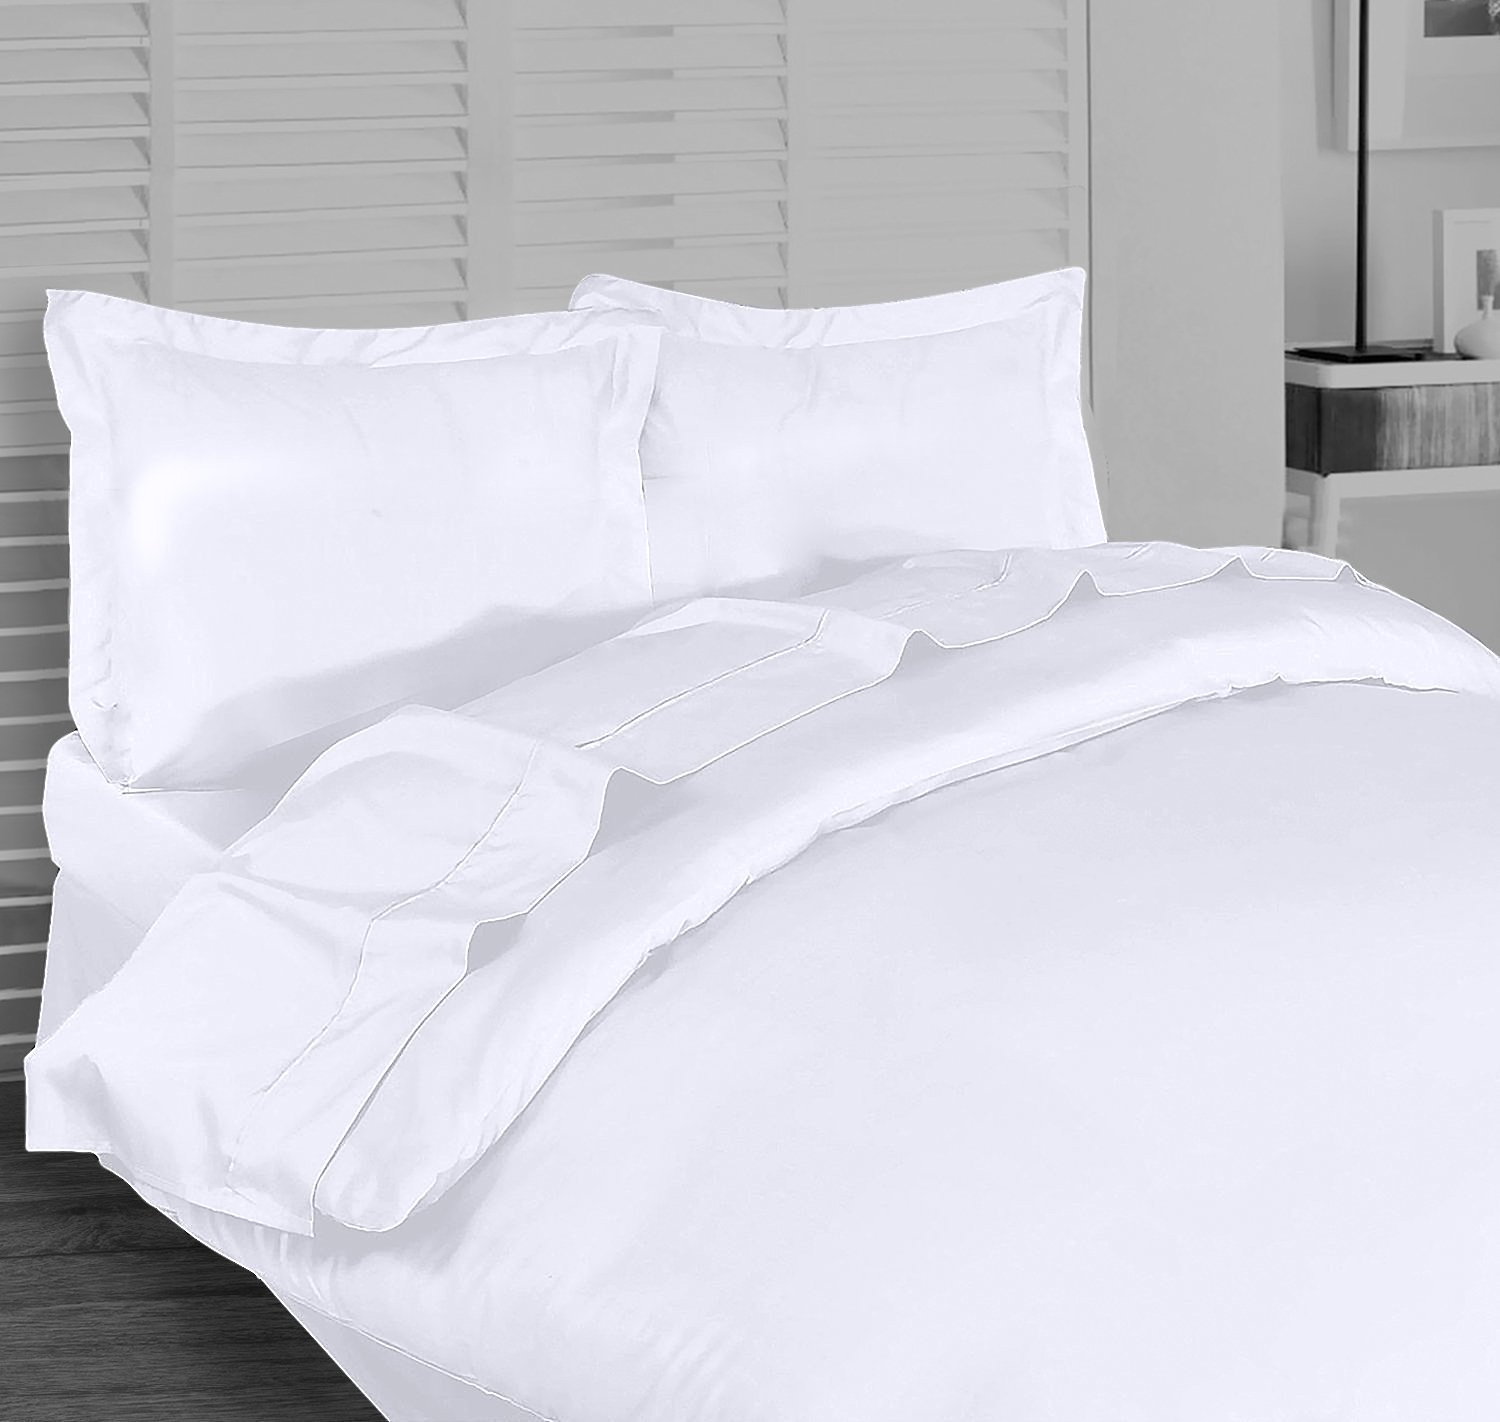 awesome plain sets and pattern cover best blue duvet duvets comforter gray grey cotton queen covers cream stunning ideas white set bedding king